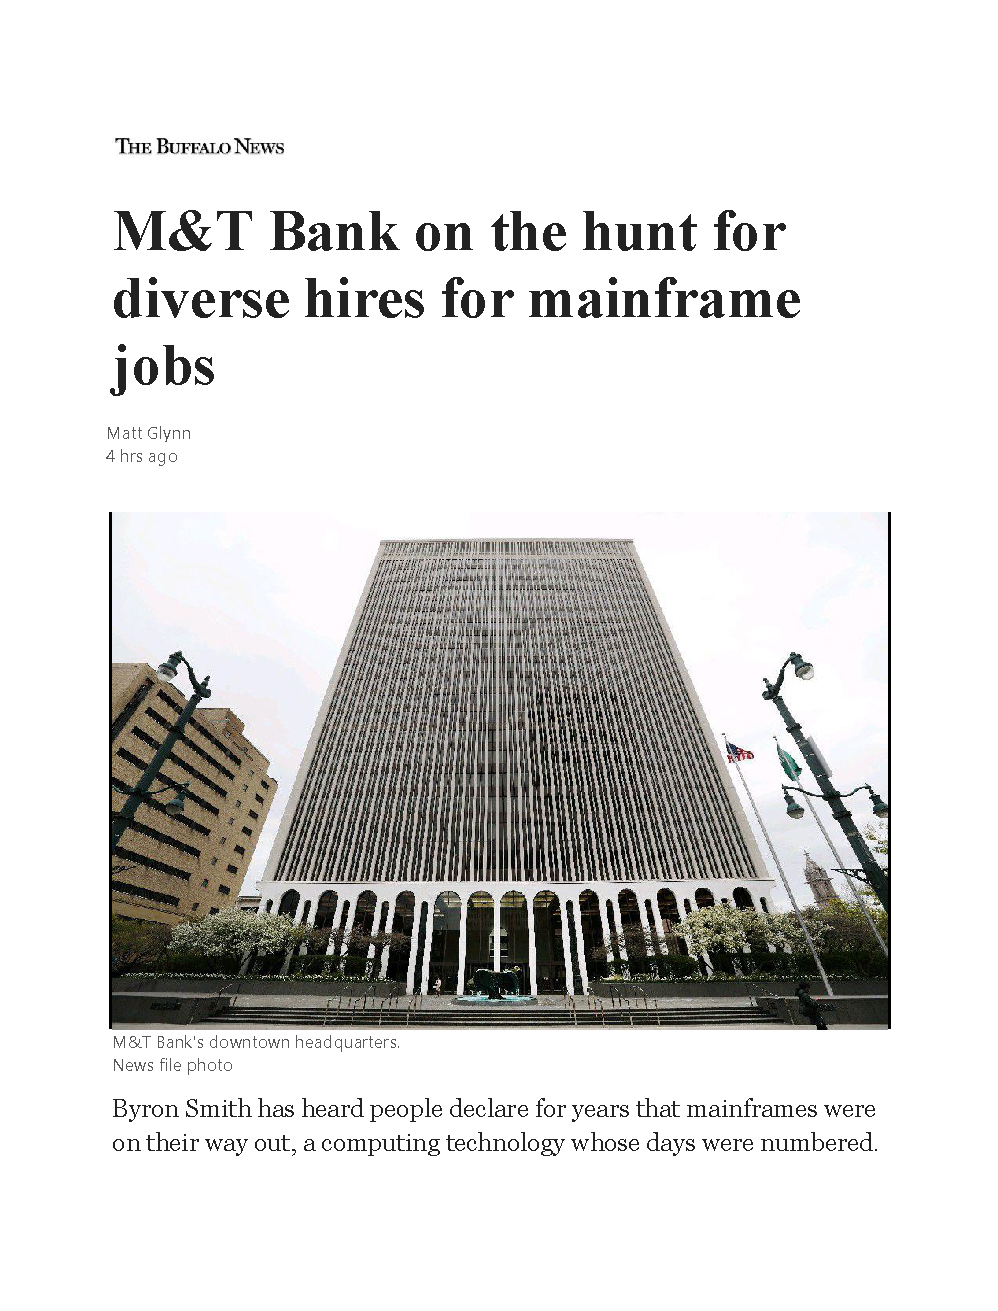 Buffalo News Article on M&T bank and Franklin Apprenticeships